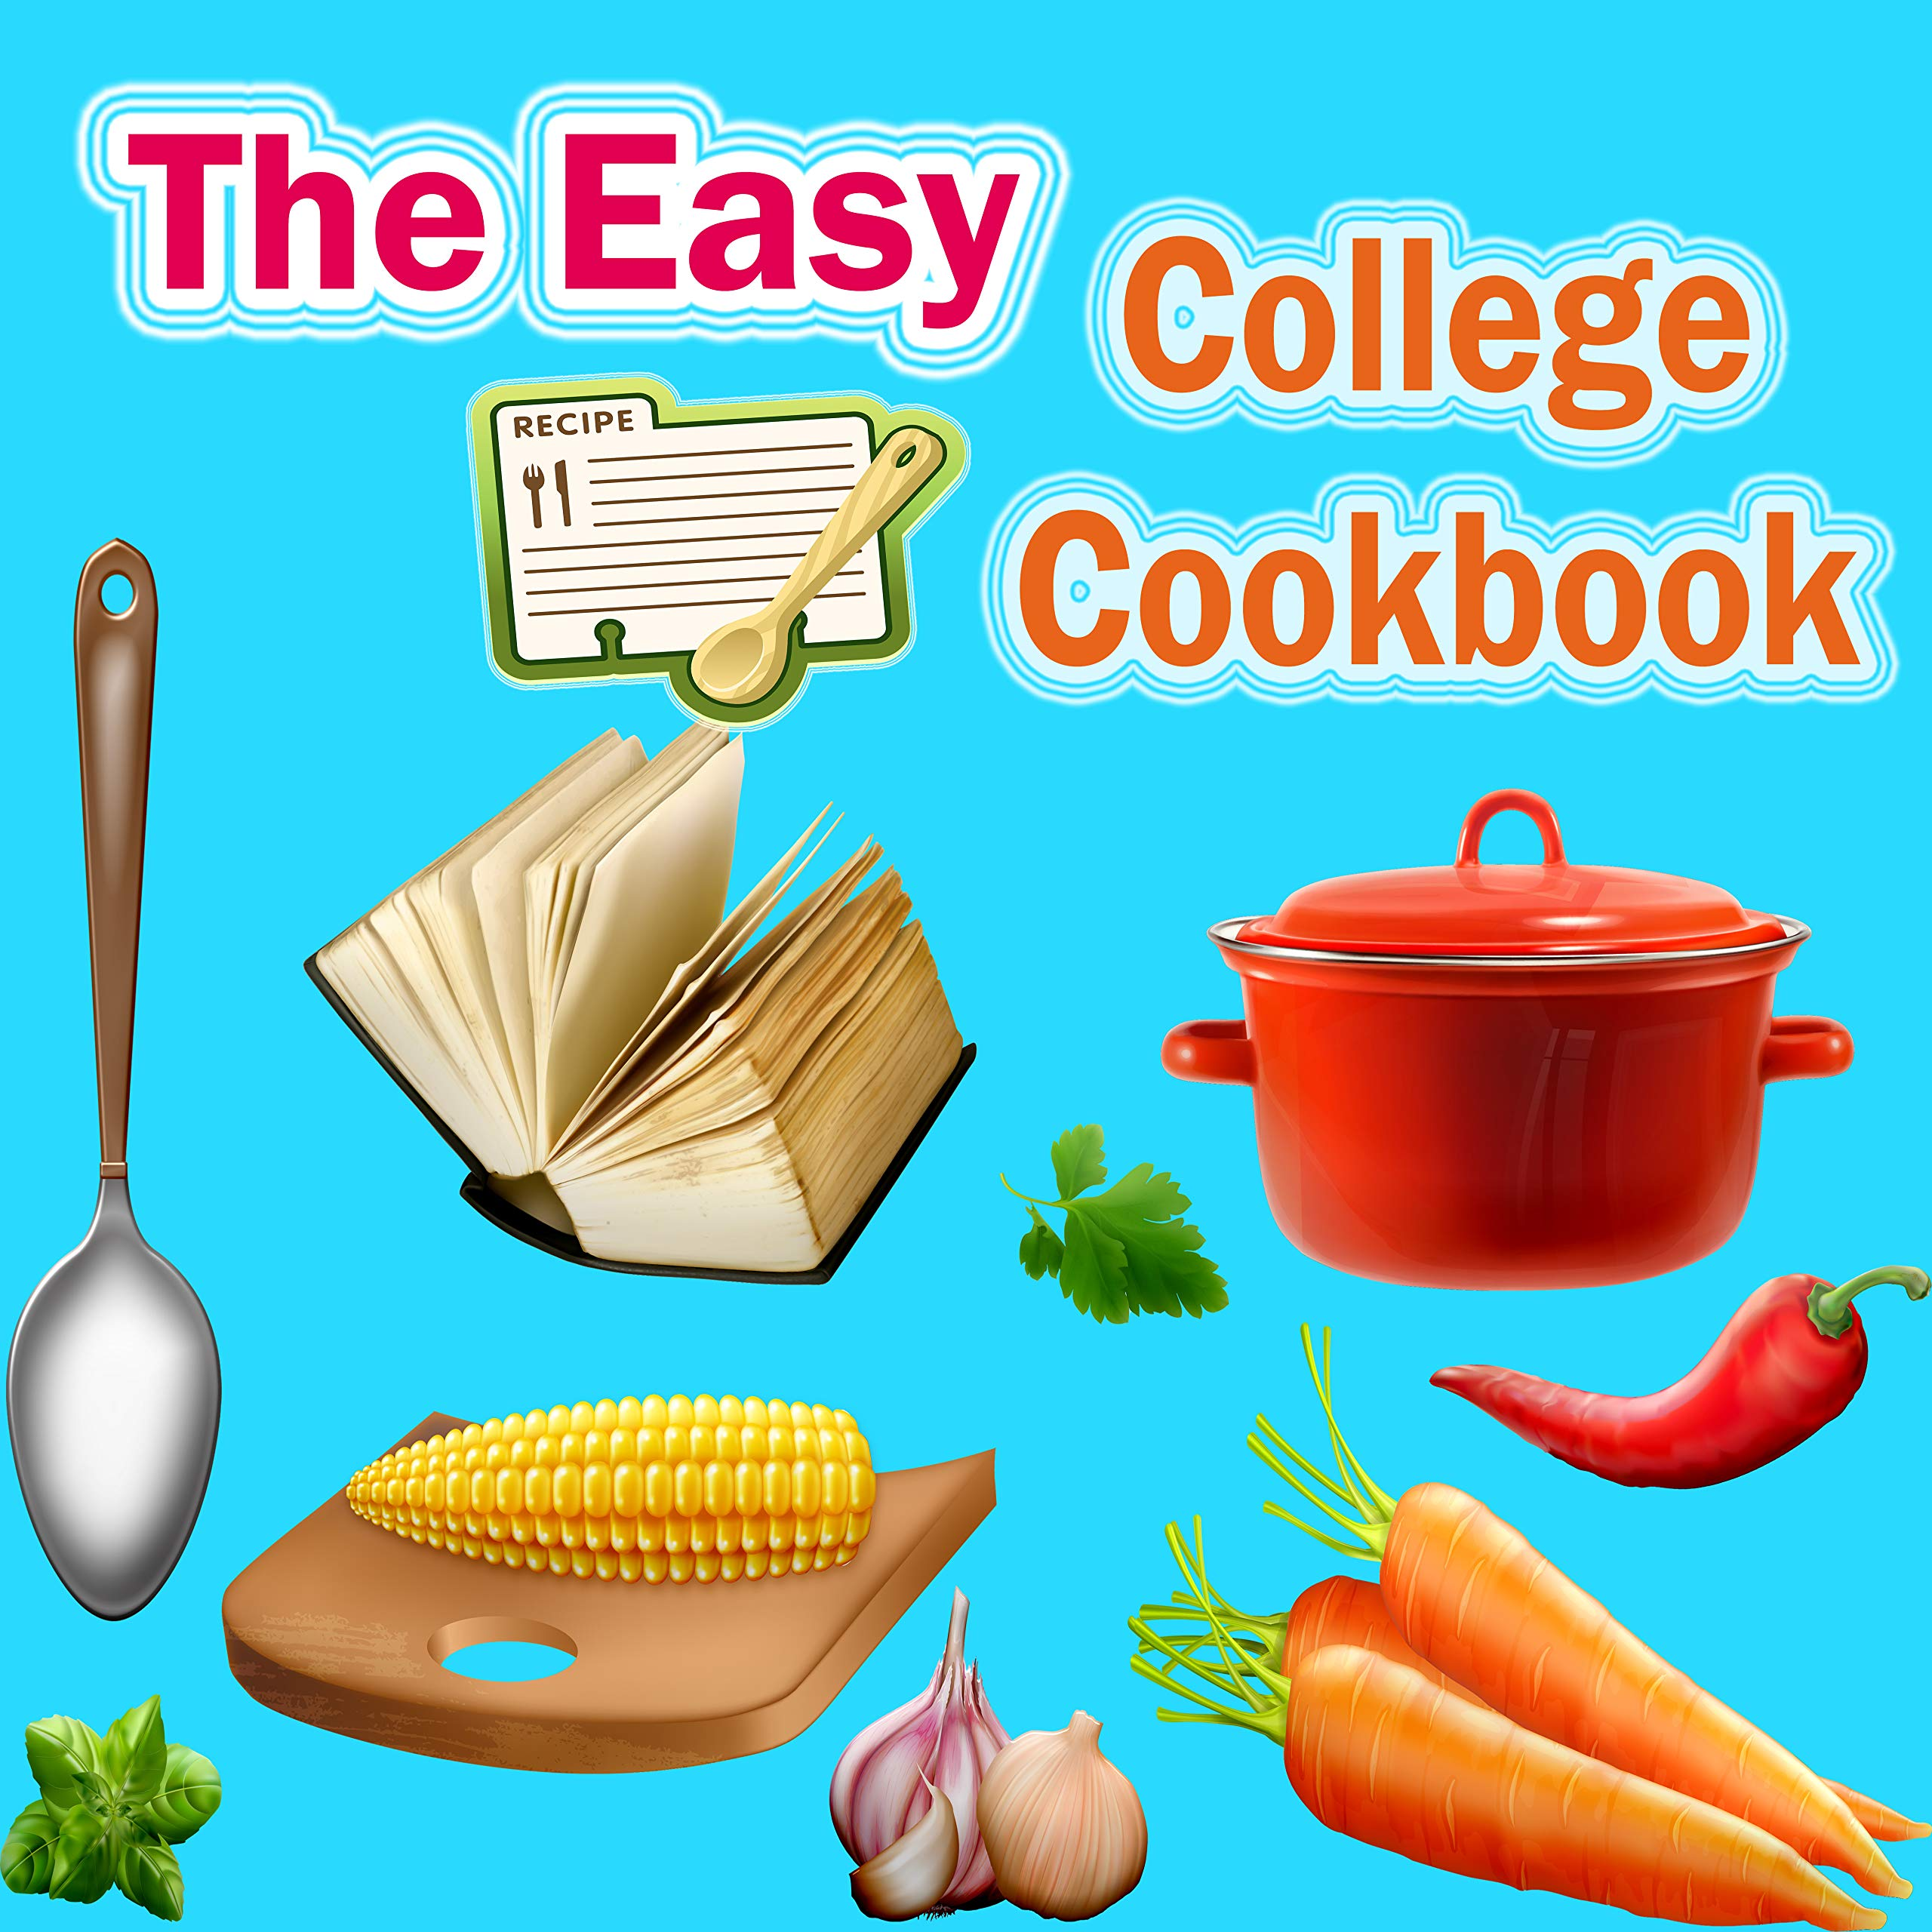 The Easy College Cookbook: Easy, Healthy Recipes for the Next five Years & Beyond -The best, tastiest and easiest food to cook